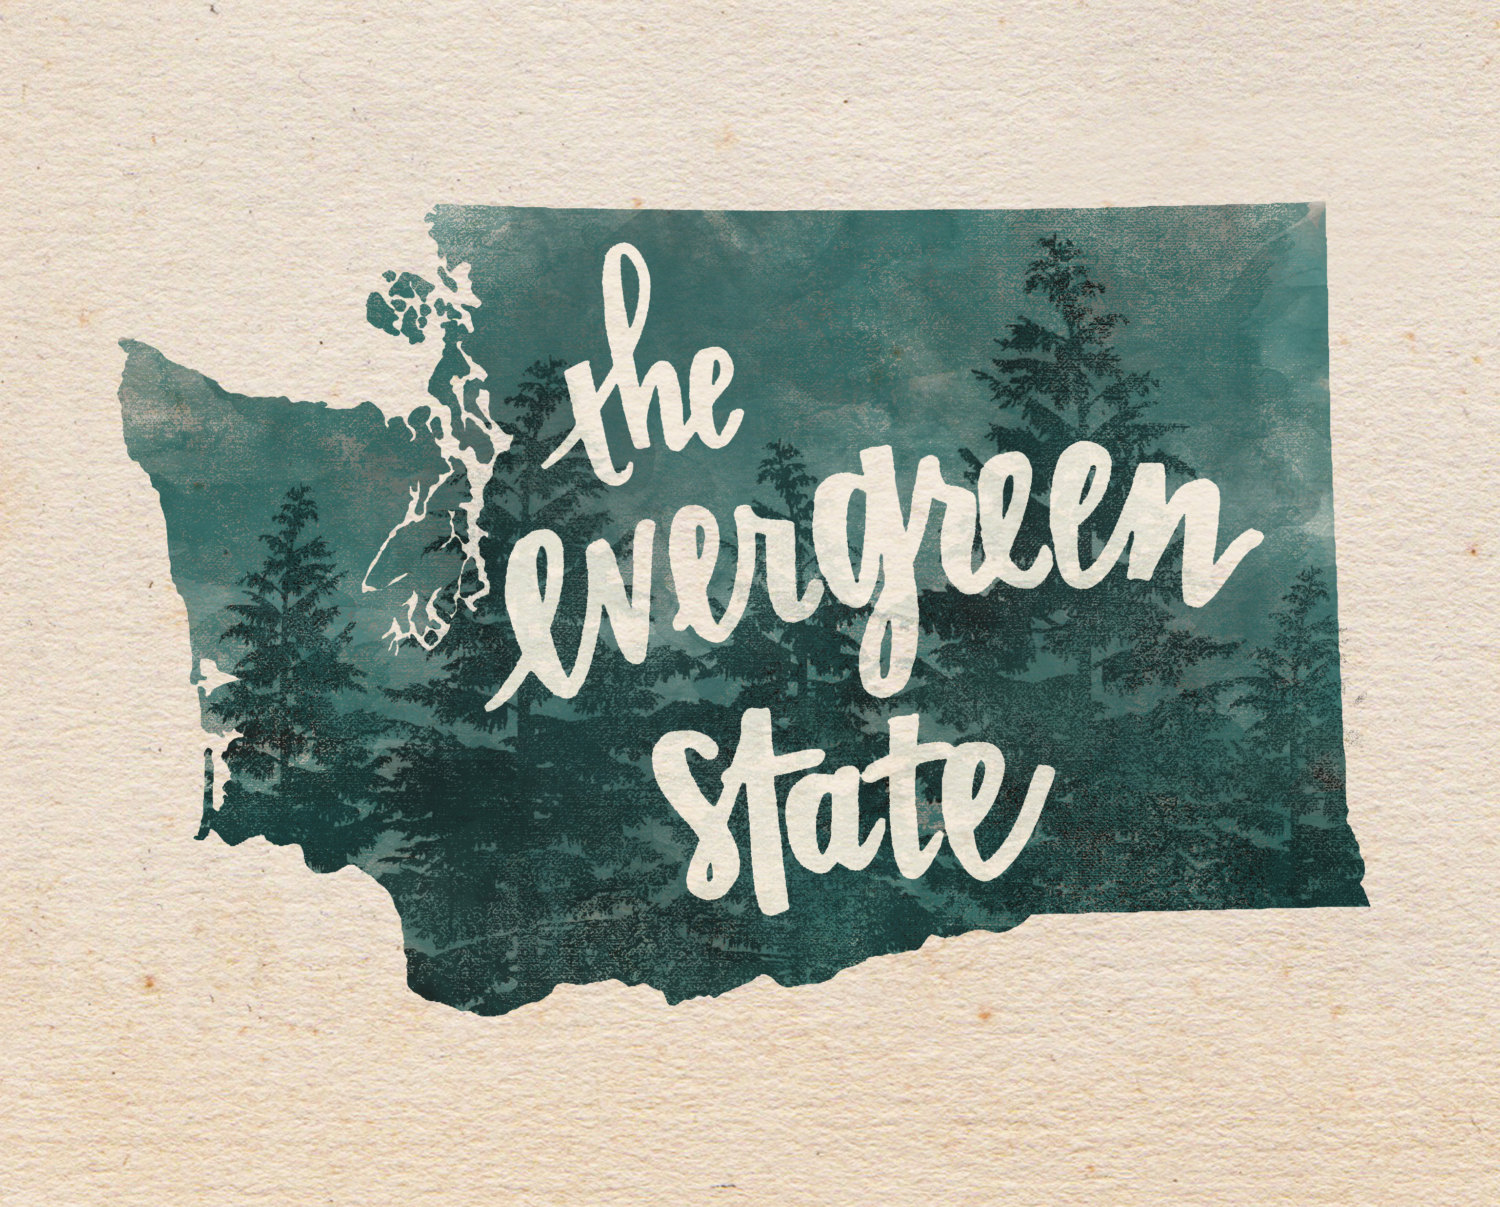 The evergreen state.